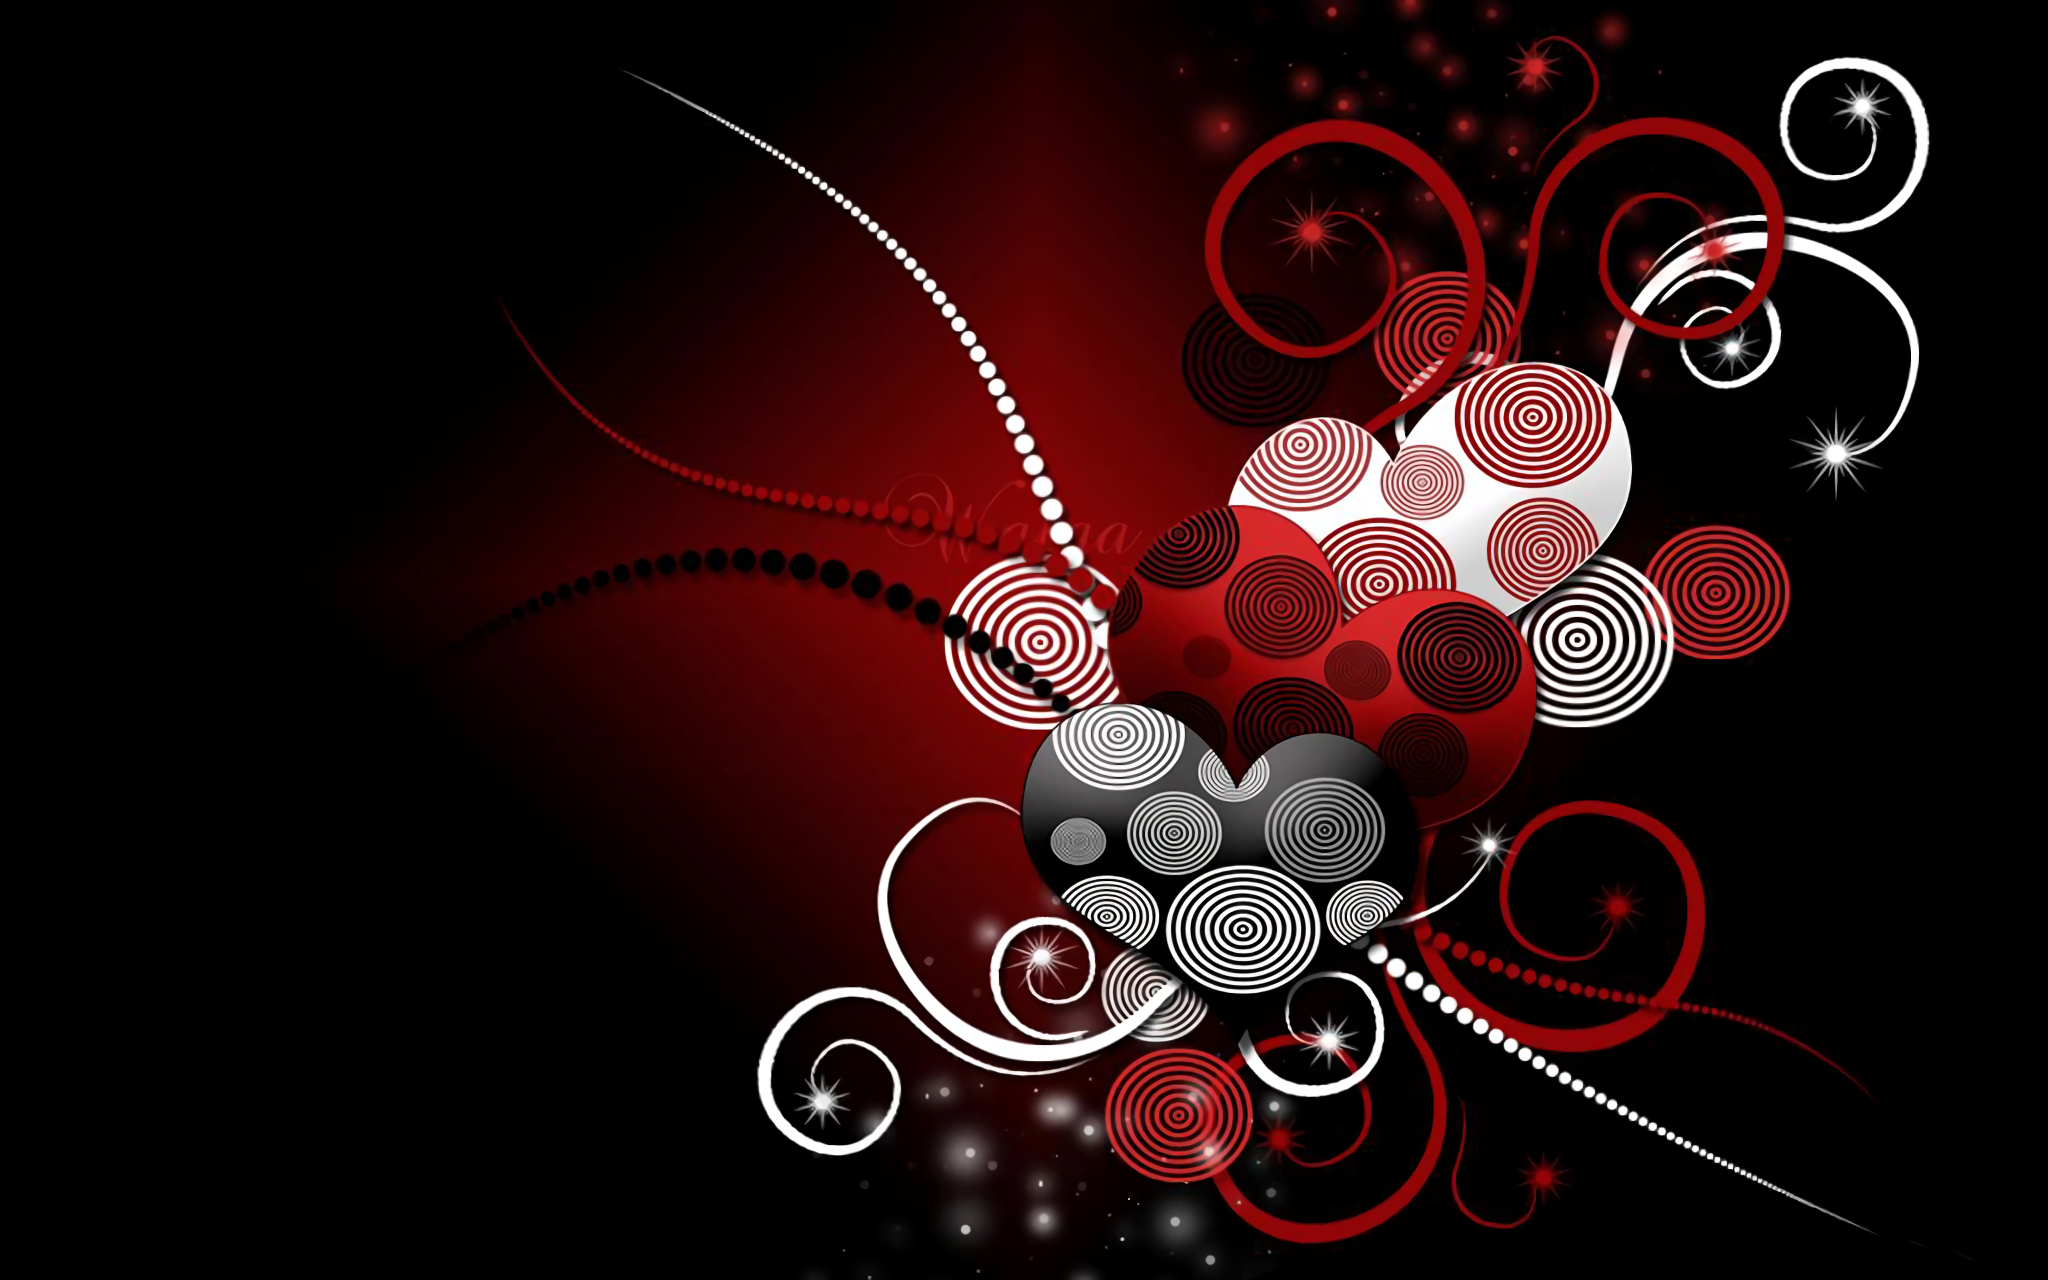 abstract hearts full hd wallpaper and background image | 2048x1280